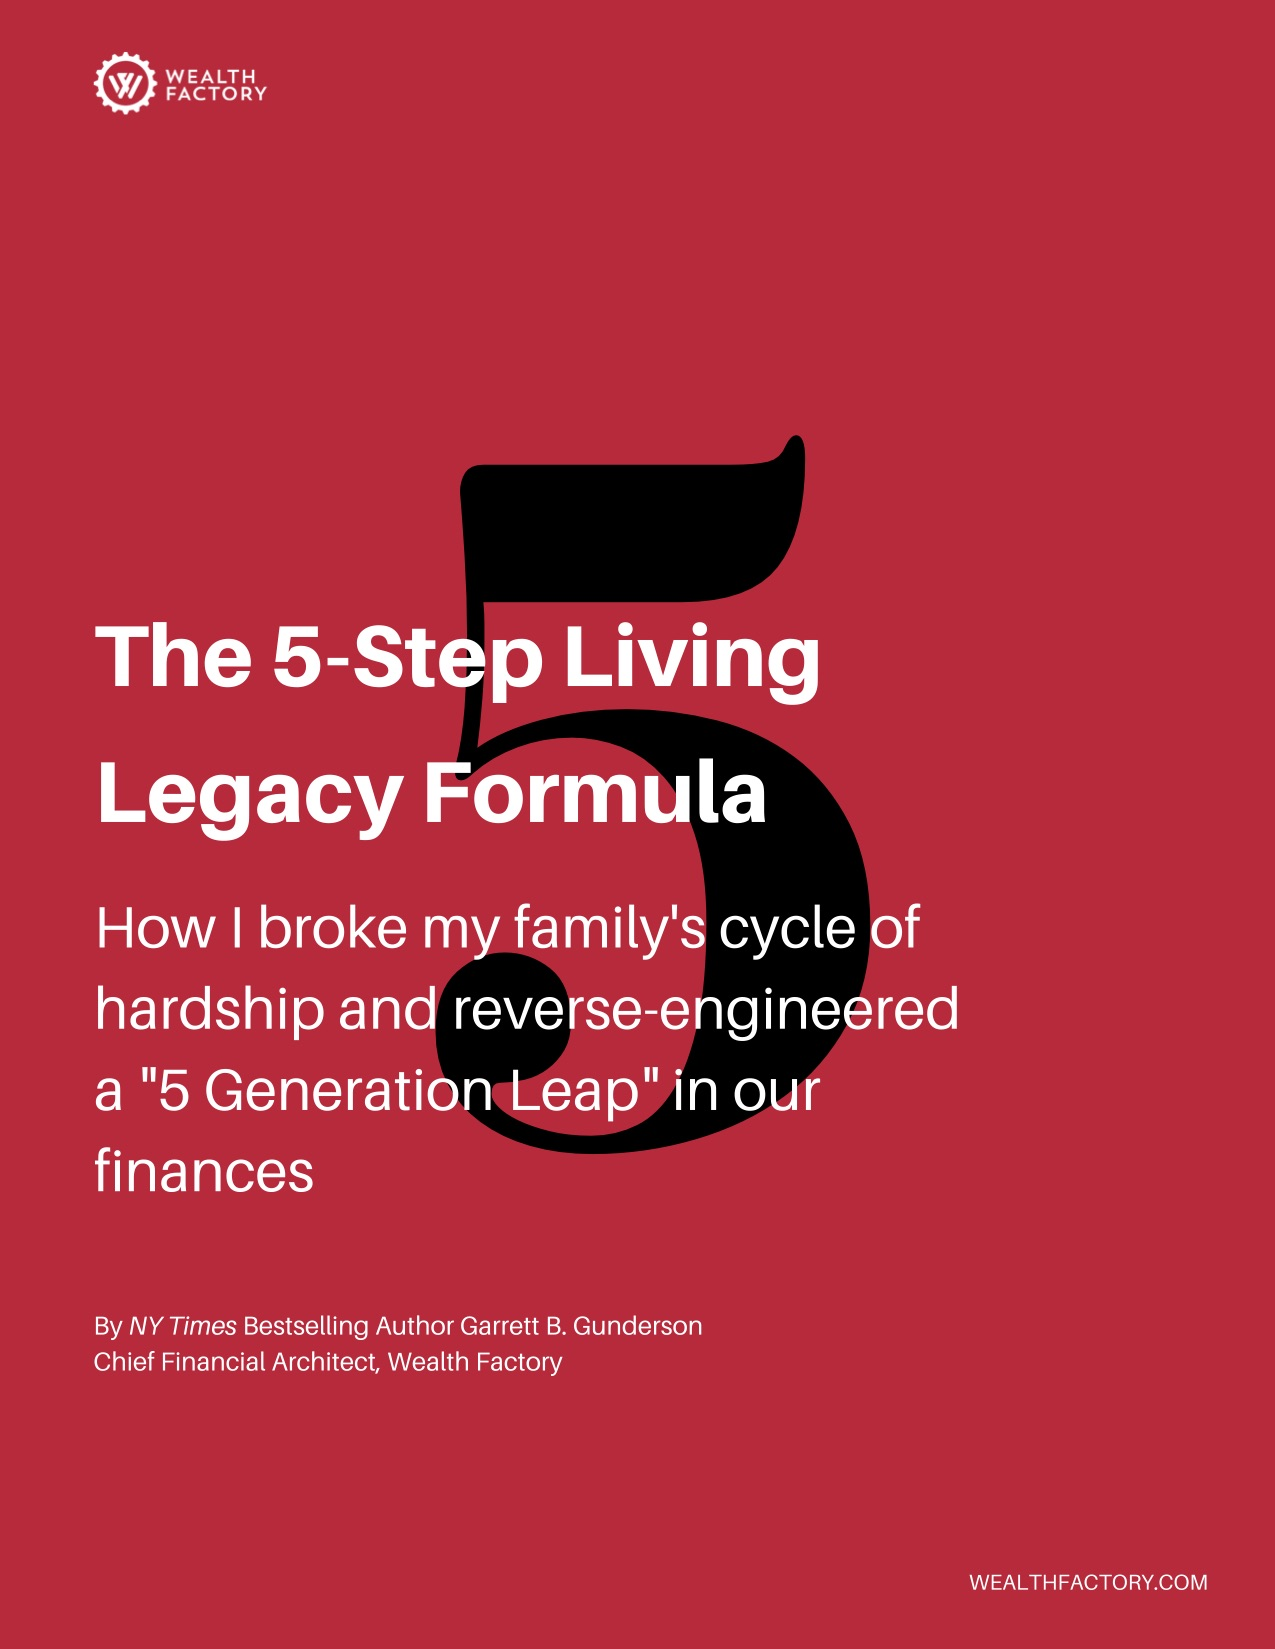 The 5-Step Living Legacy Formula